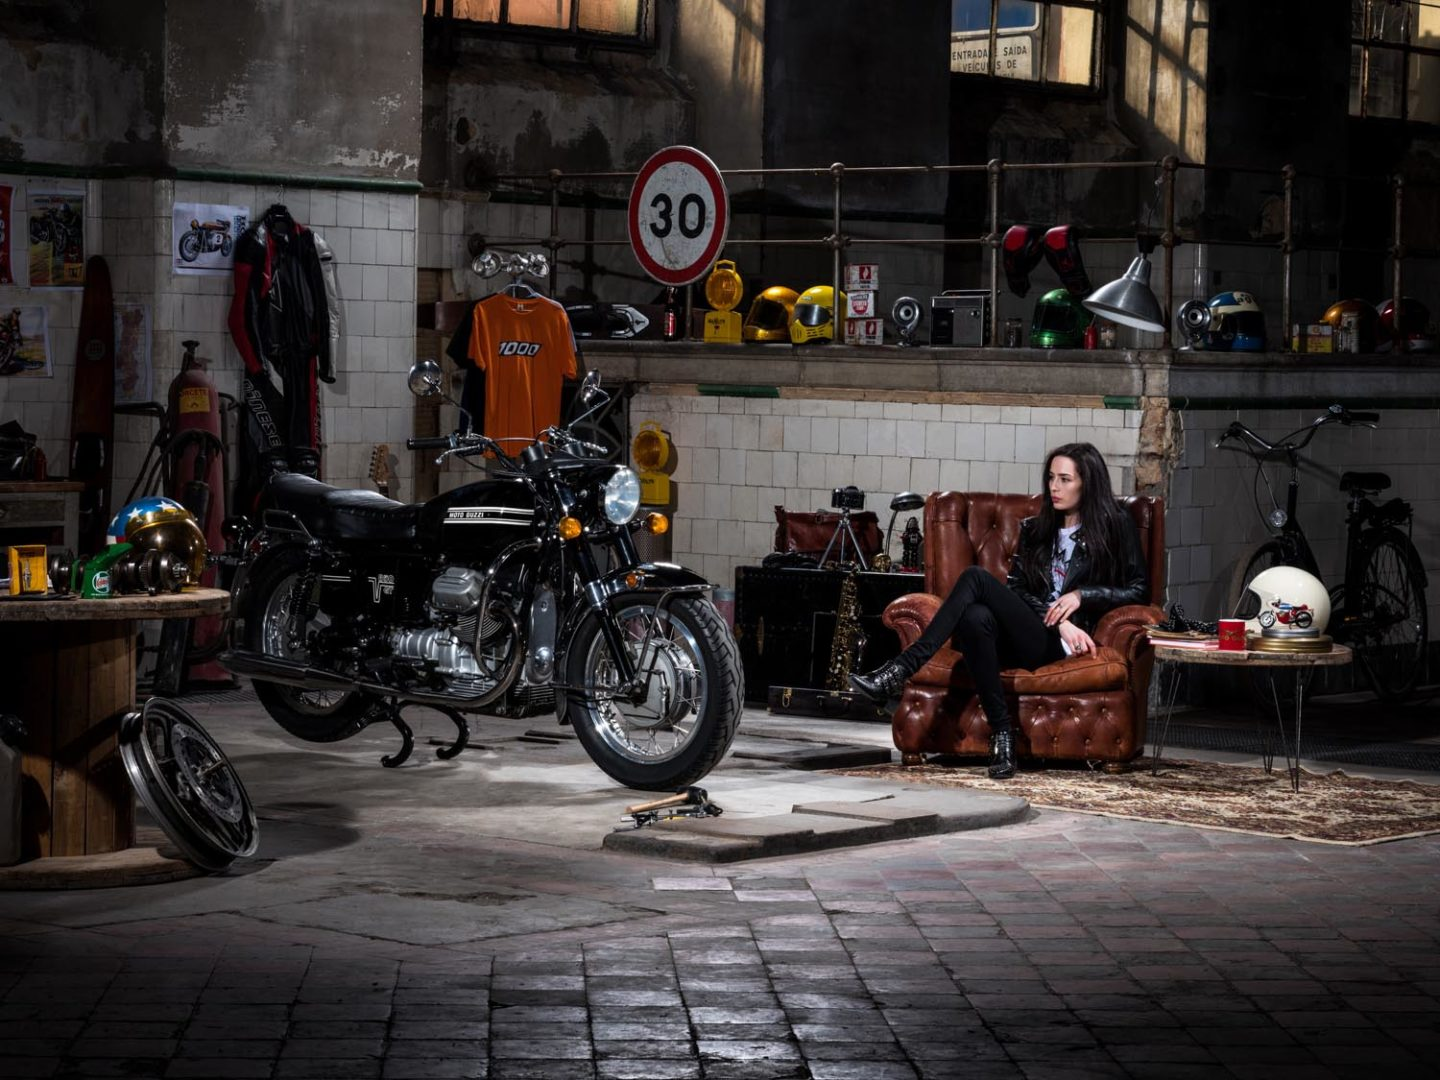 Marina Oliveira day dreaming about taking the 1972 Moto-Guzzi V7 850 GT for a ride